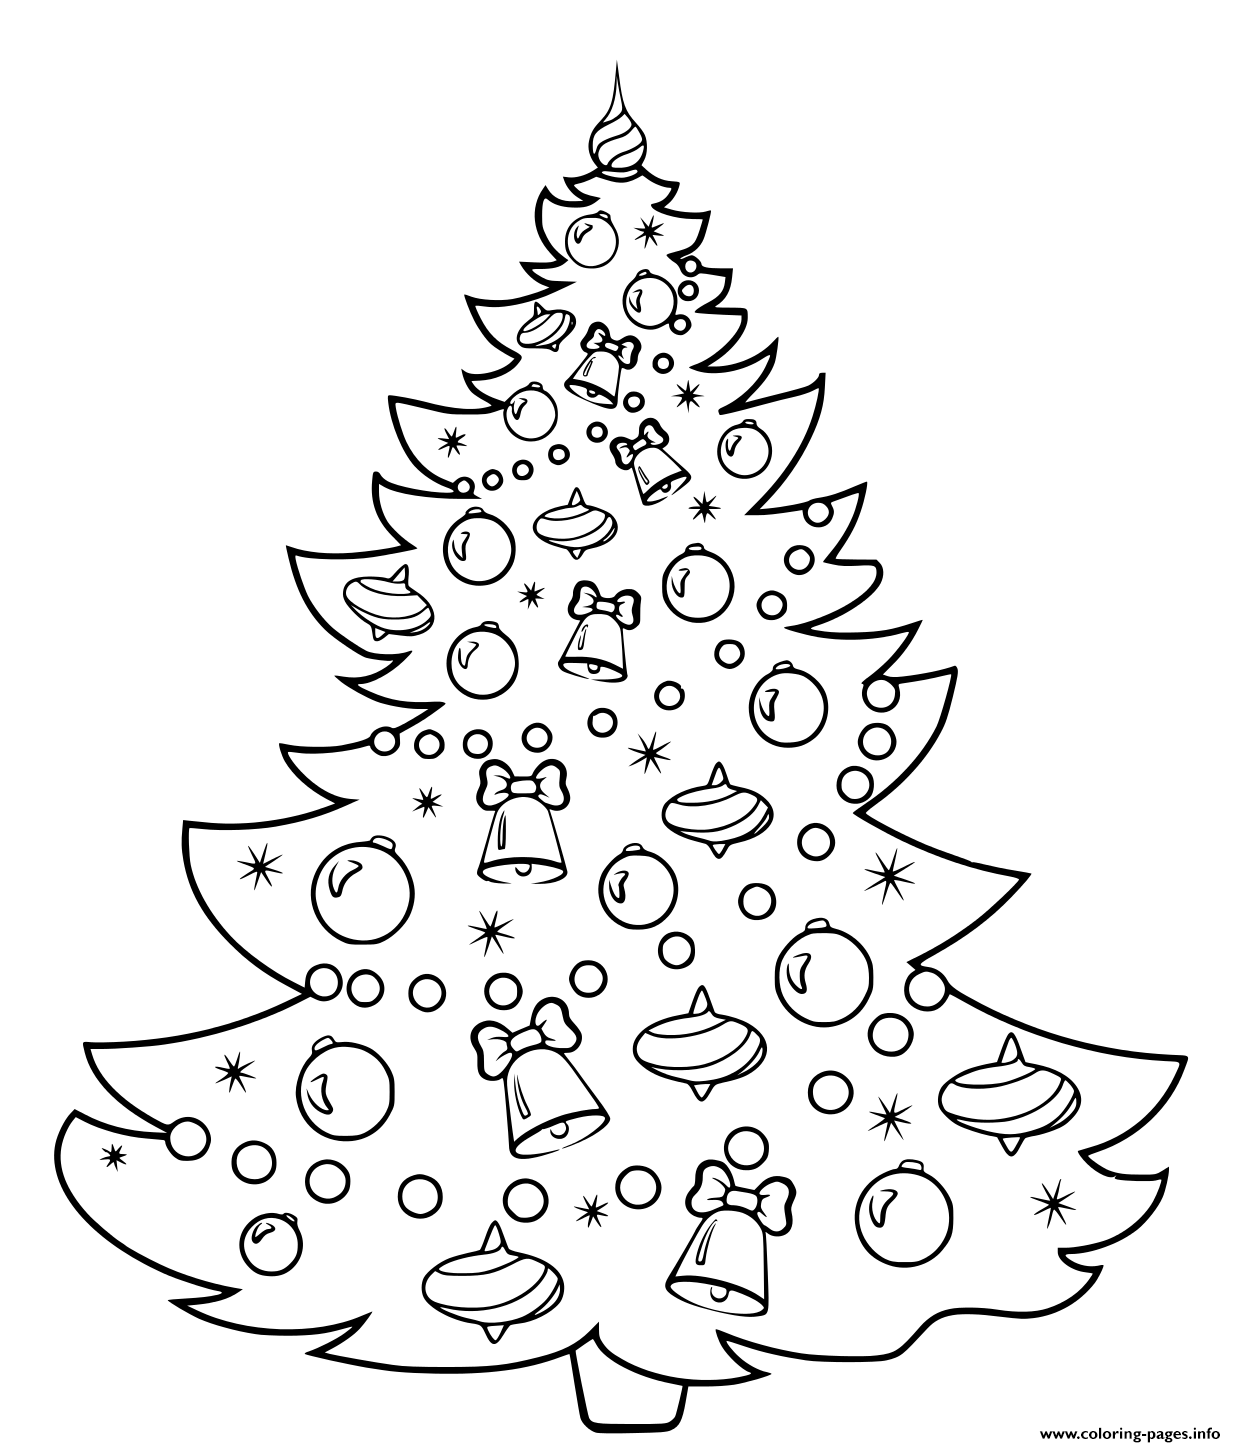 Christmas Tree Cartoon Coloring Pages Printable